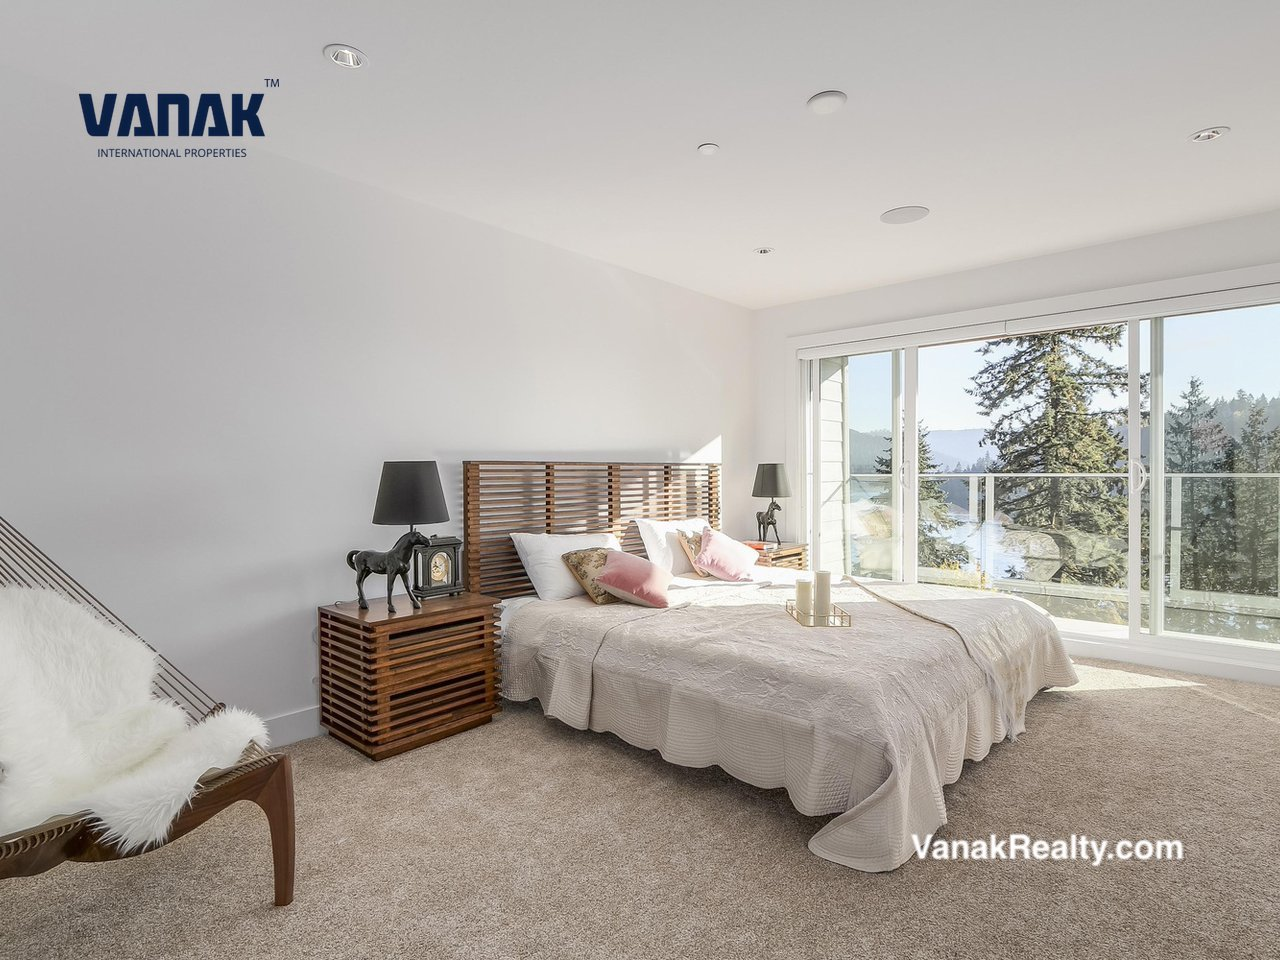 2867 Panorama,North Vancouver,BC,Canada,4 Bedrooms Bedrooms,3 BathroomsBathrooms,Single Family House,Panorama,1359